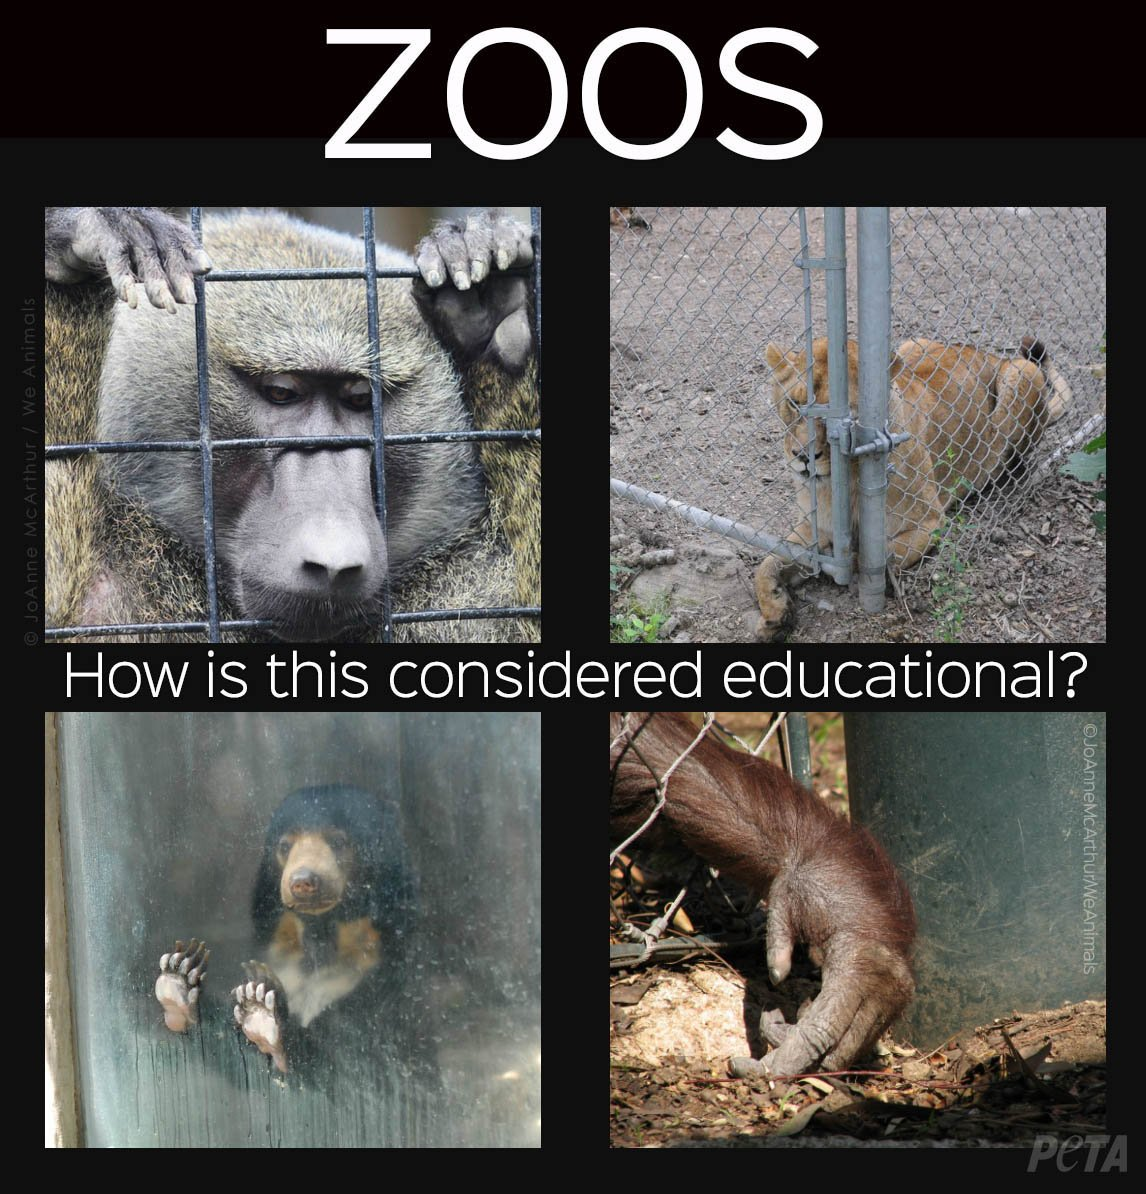 are zoos unethical to animals essay In his 2012 book an introduction to animals in visual culture, author randy malamud clearly states his beliefs about the ethical concerns zoos raise: the zoo experience is voyeuristic, imperialistic, inauthentic, and steeped in the ethos of consumer culture, which is antithetical to nature and ecology, and hence a danger to animals.